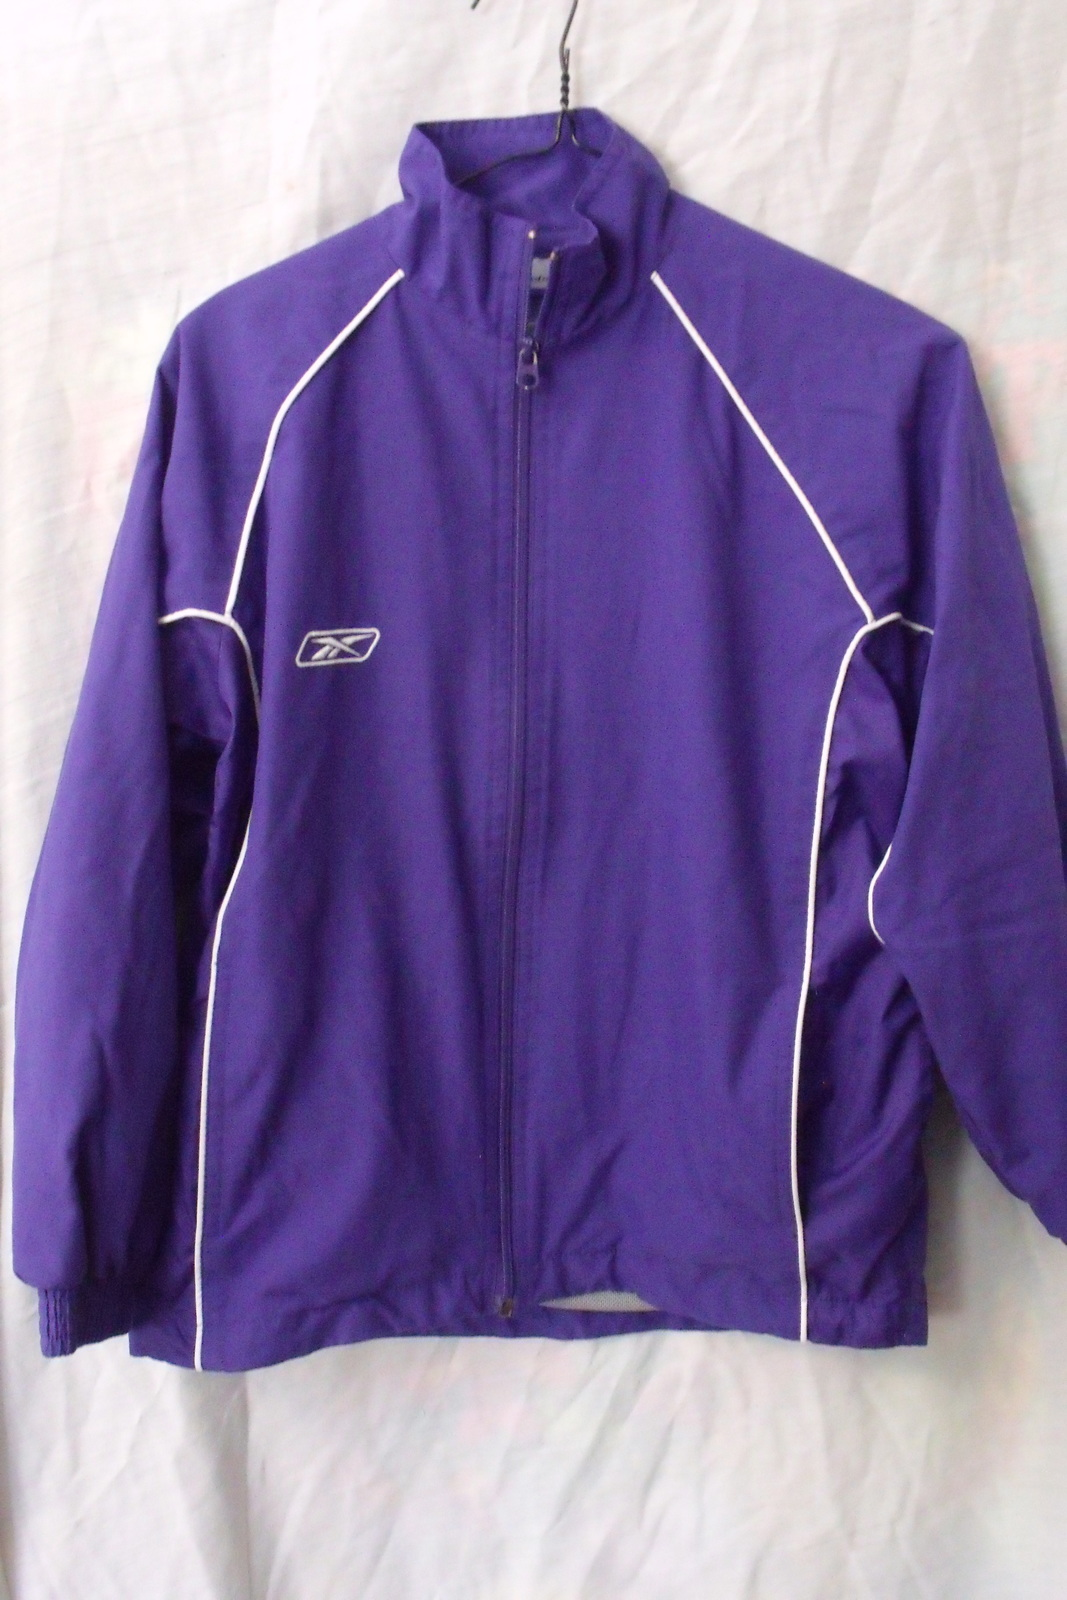 Primary image for Boys Reebok NWOT Purple with White Trim Long Sleeve Windbreaker Jacket Size L